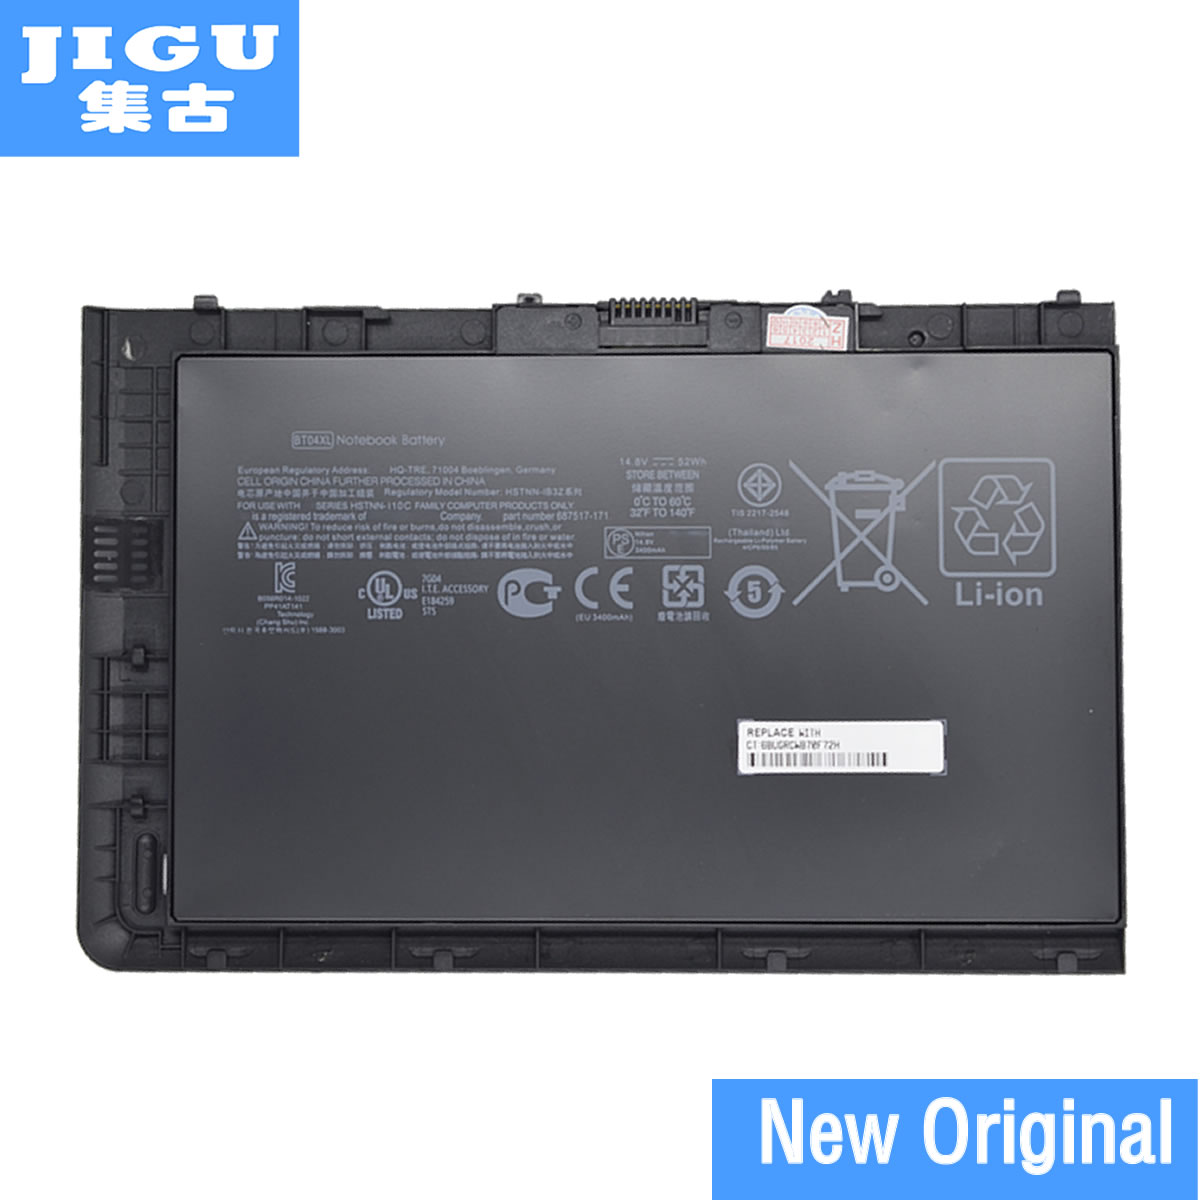 JIGU ORIGNAL Laptop Battery BT04XL 687517-2C1 HSTNN-DB3Z HSTNN-IB3Z HSTNN-I10C 687945-001 FOR HP FOR For EliteBook Folio 9470m jigu laptop battery bl06042xl bl06xl hstnn db5d hstnn ib5d hstnn w02c for hp for elitebook folio 1040 g0 g1 l7z22pa